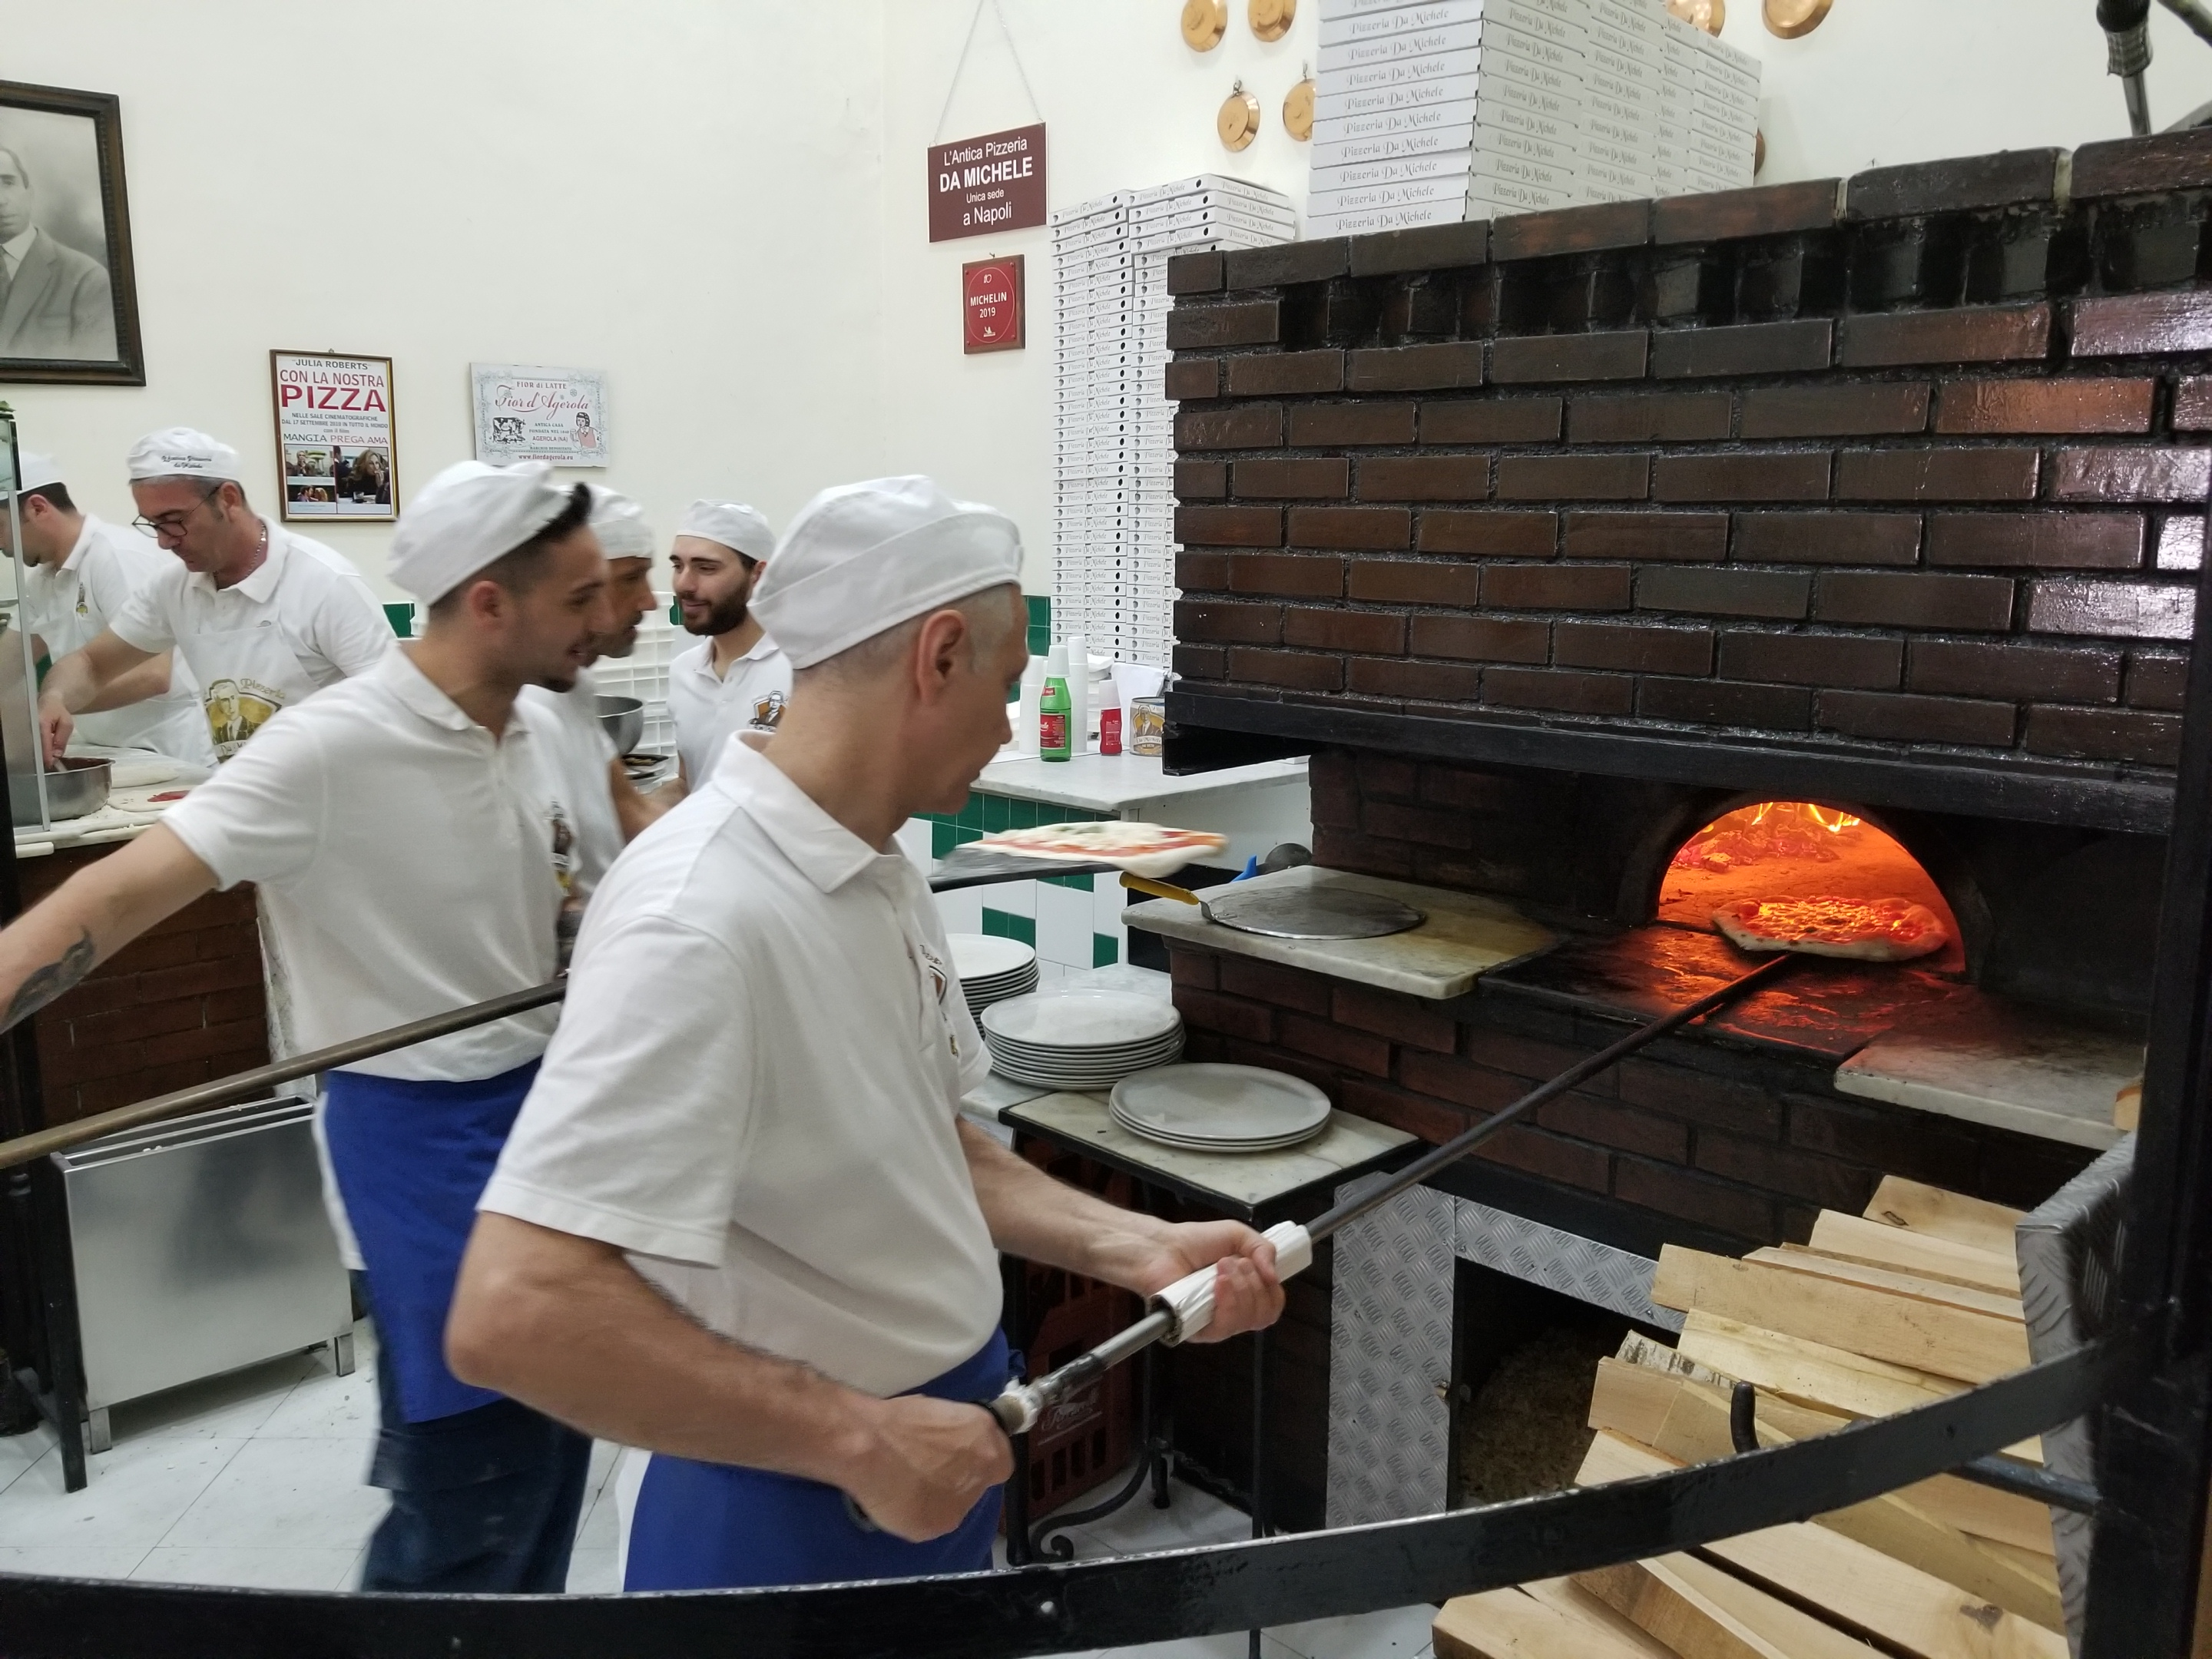 Best pizza in the world can be found in Naples, Italy. Our recommendations for pizza from ouritalianjourney.com, https://ouritalianjourney.com/best-pizza-in-world-naples/